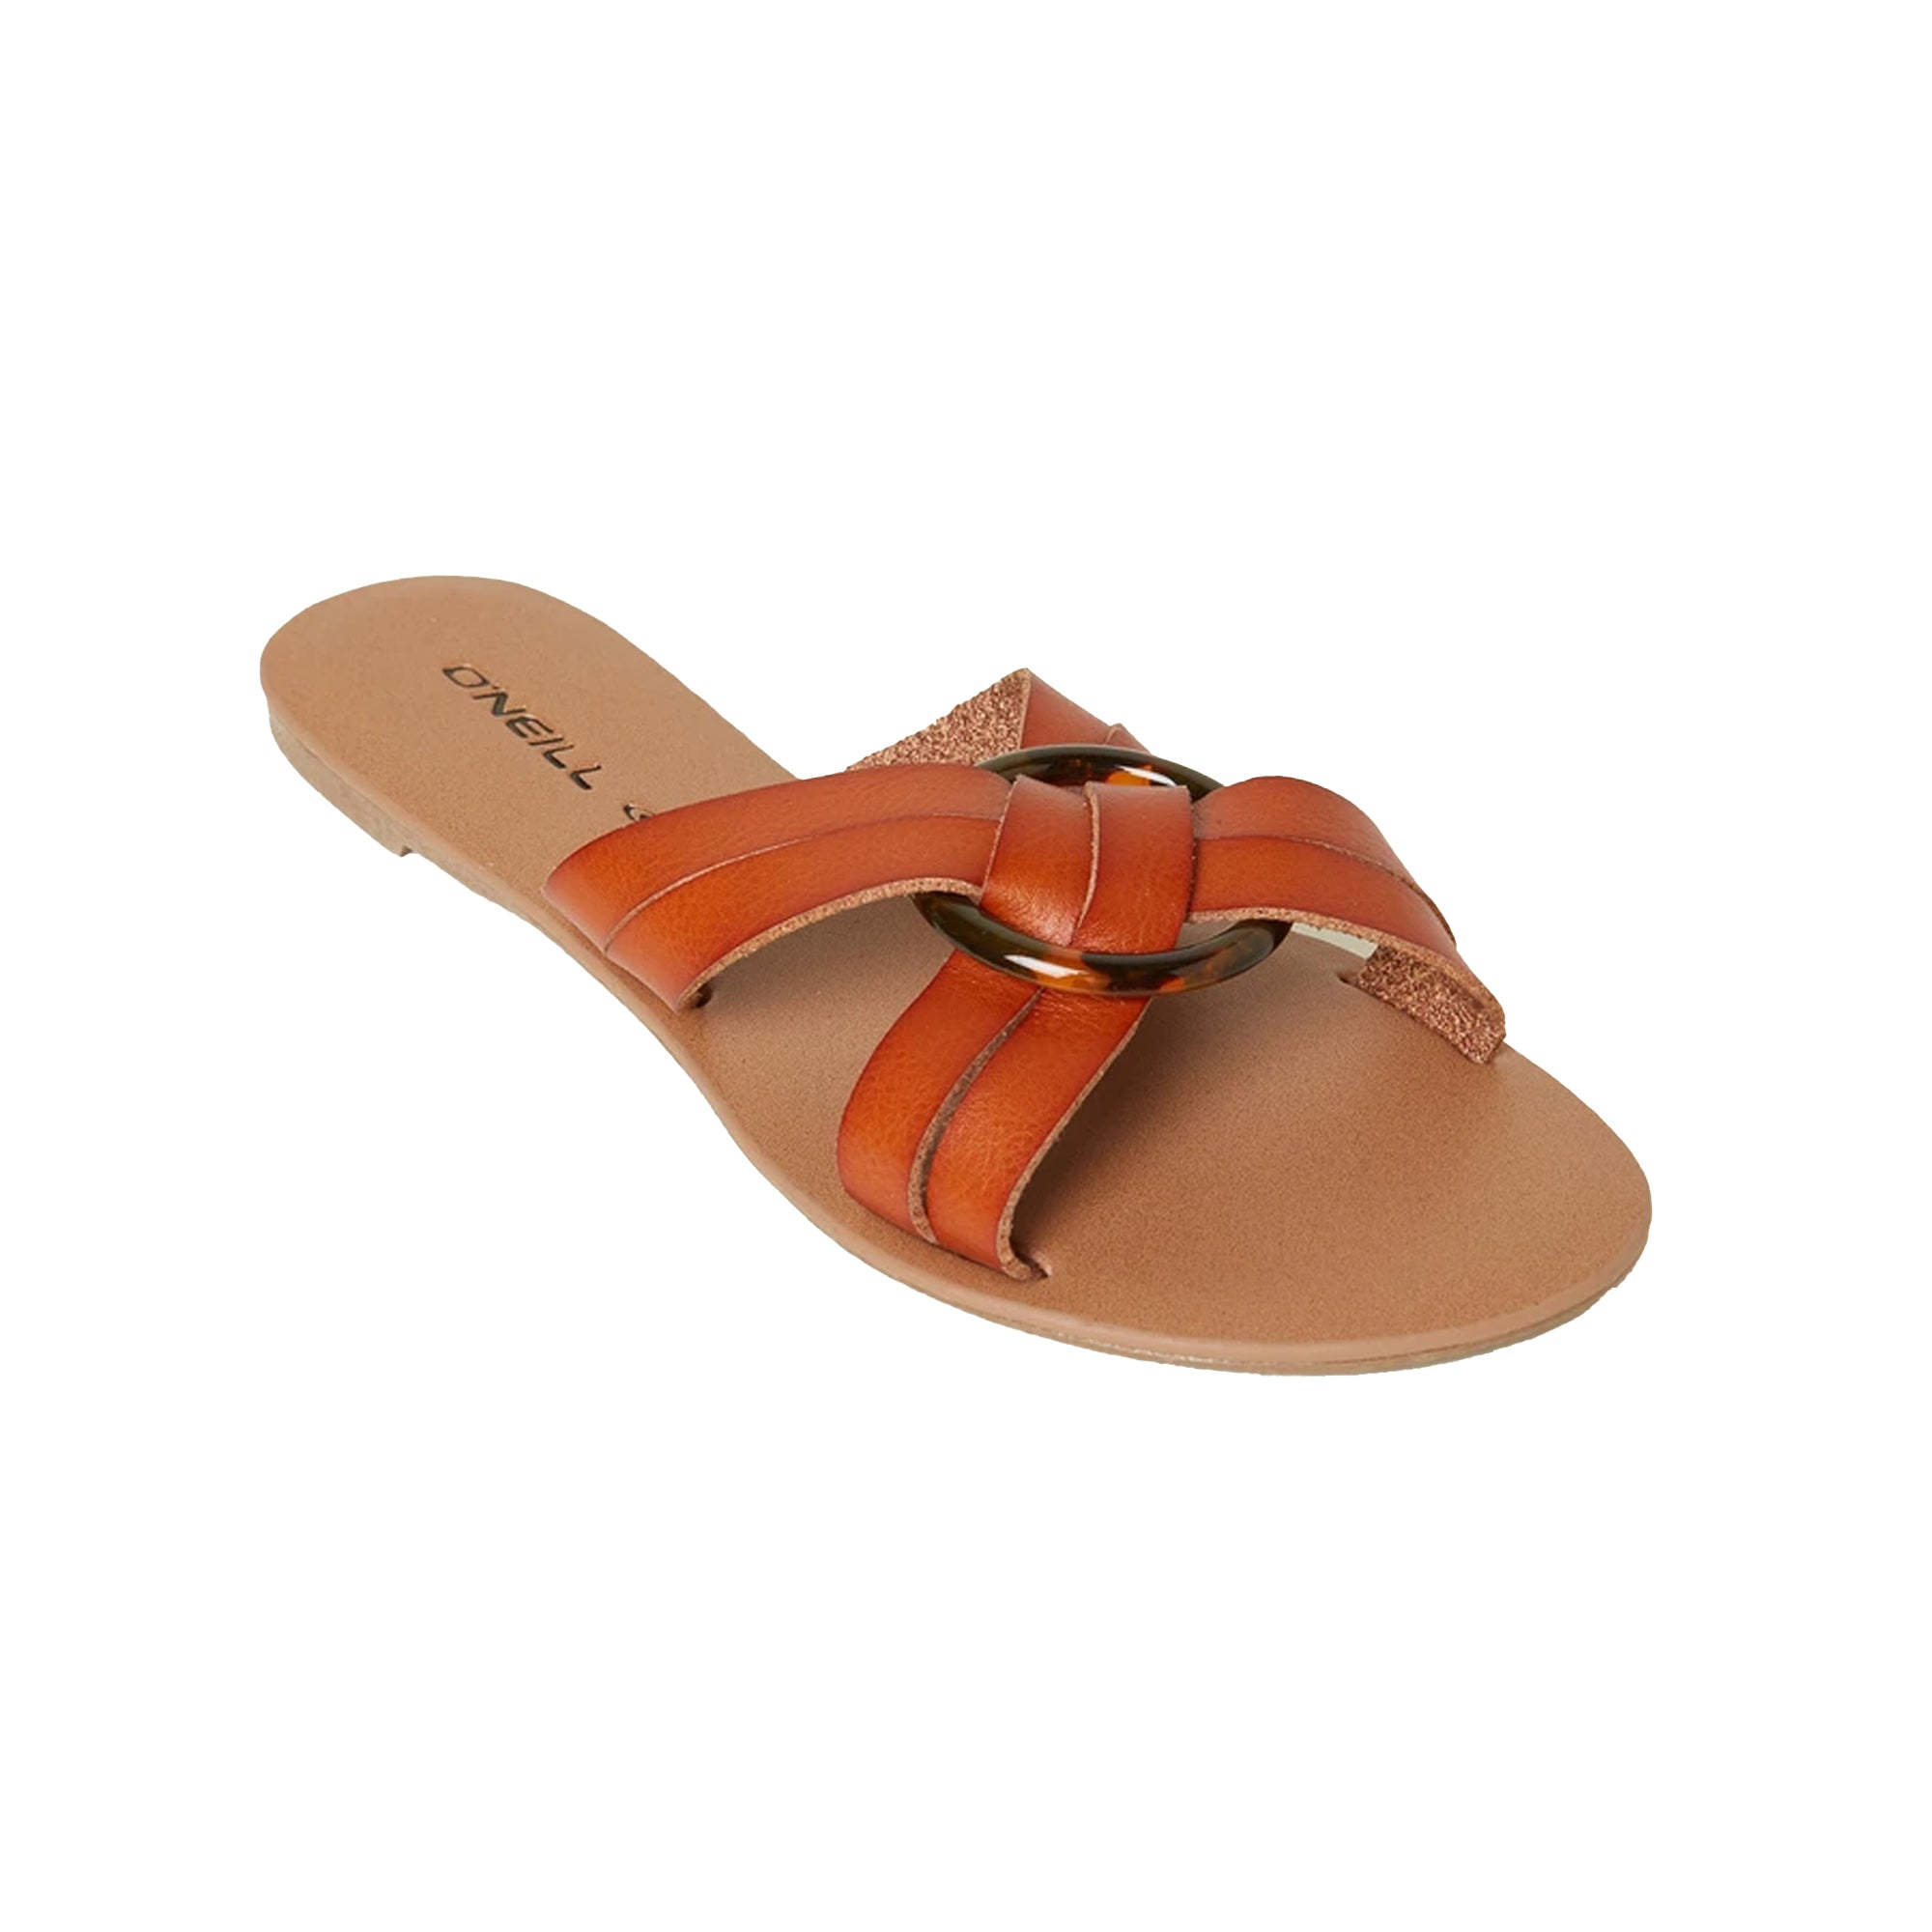 O'Neill Vilano Women's Sandals